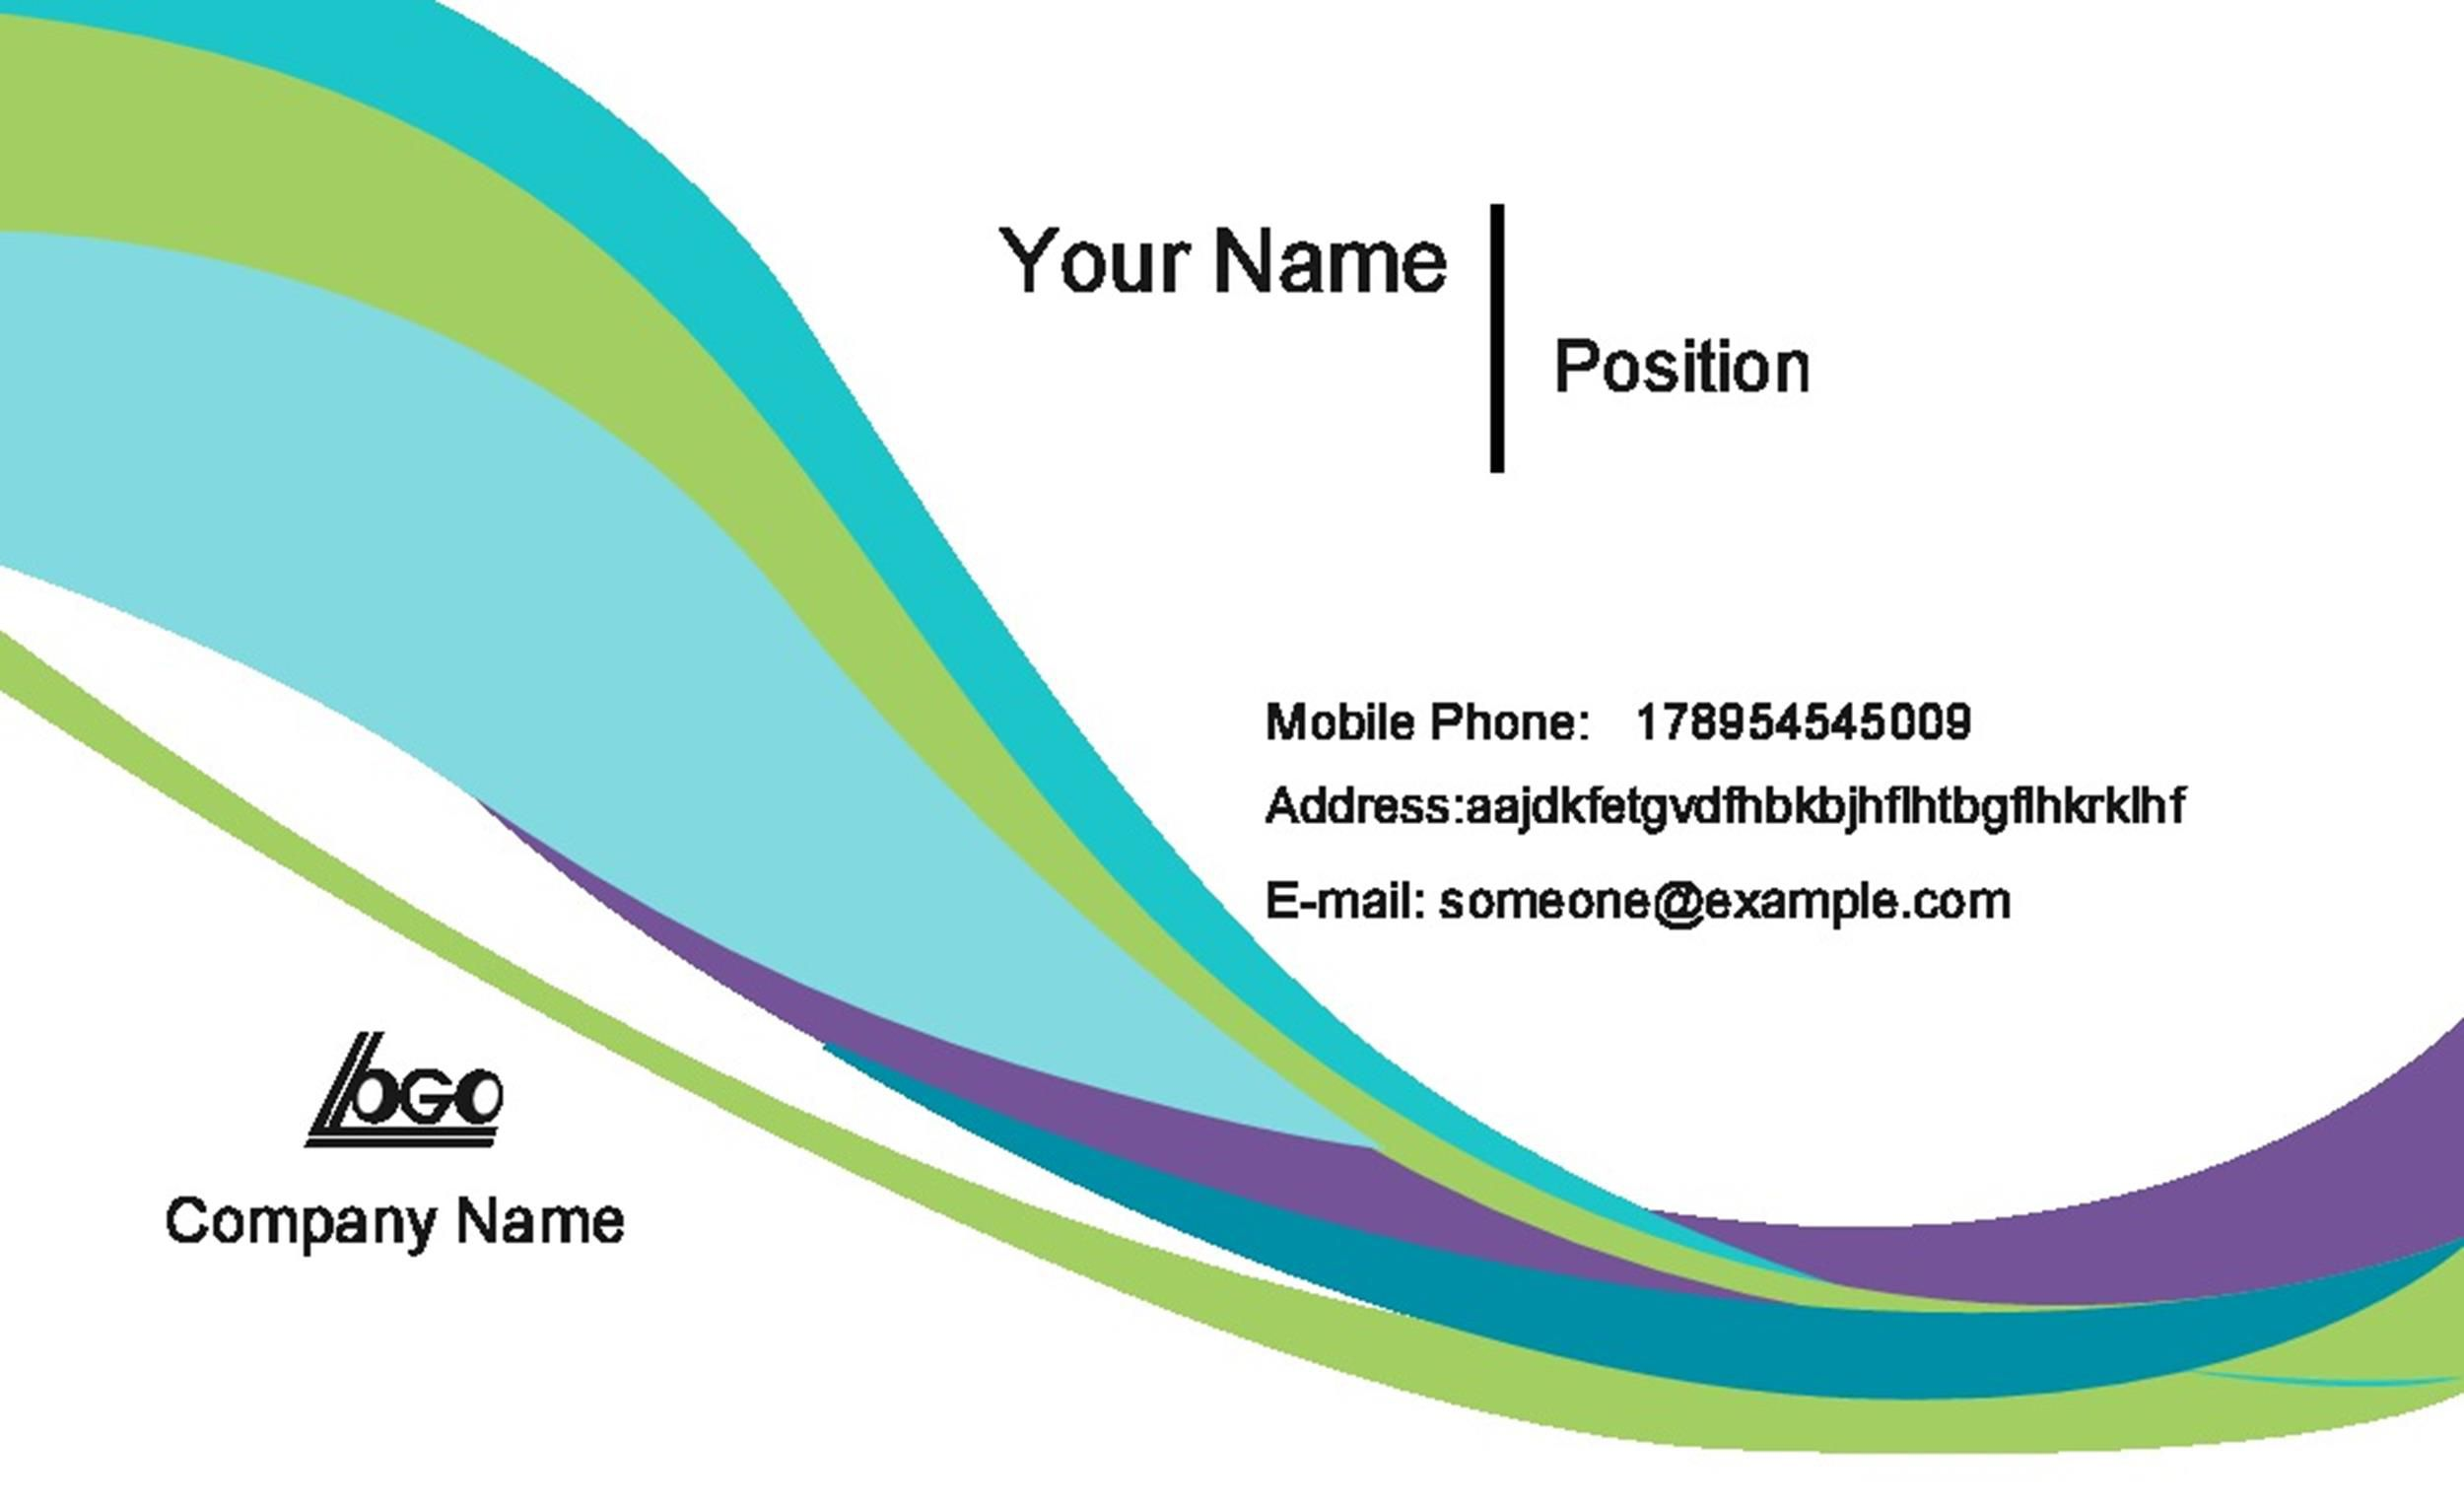 006 Dreaded Busines Card Template Microsoft Word Idea  Avery 8 Per Page How To Make A Layout OnFull